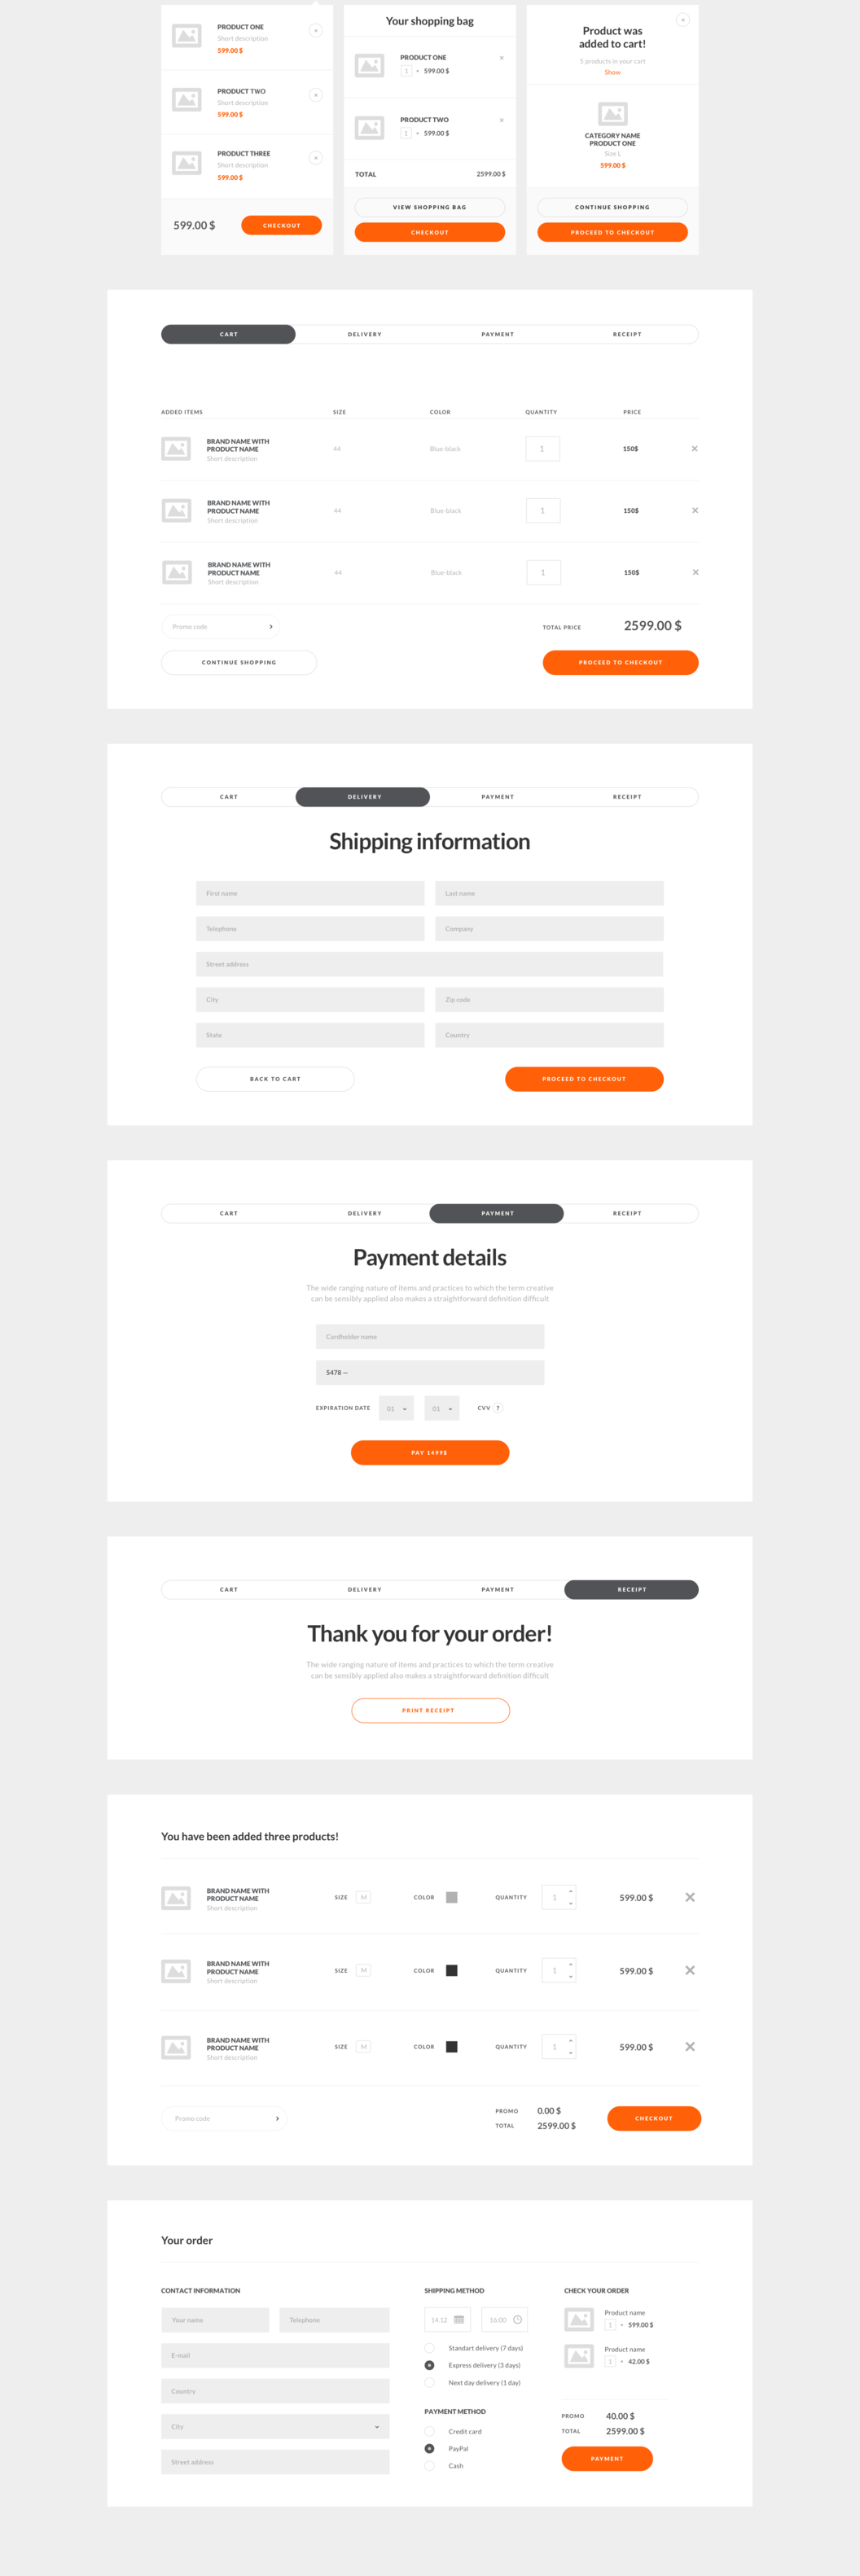 UI8 - Checkout process - Wireframes